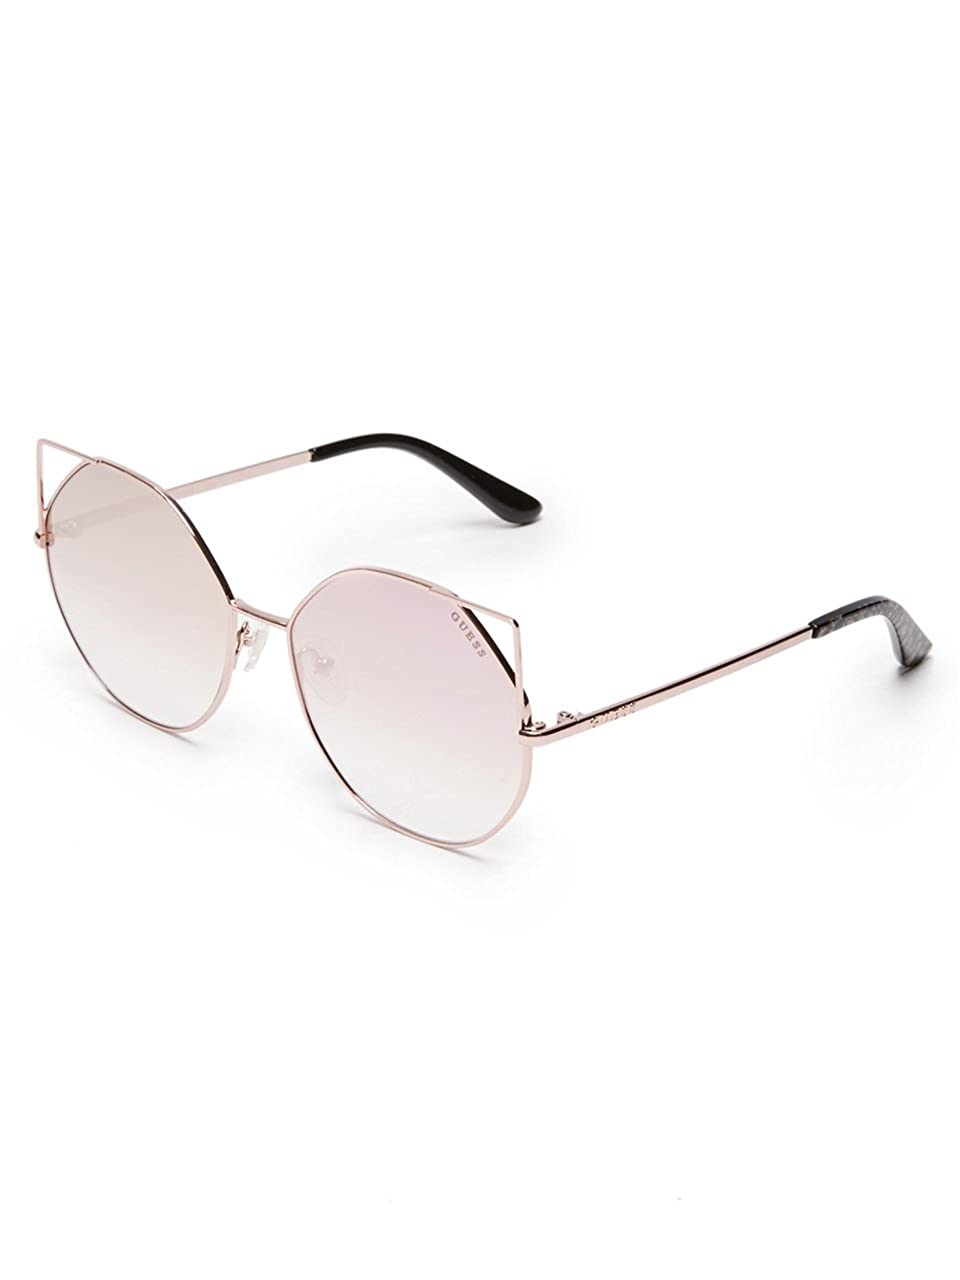 Guess Metal Peaked Round Sunglasses in Shiny Rose Gold Pink GU7527 28Z 58 GU7527A